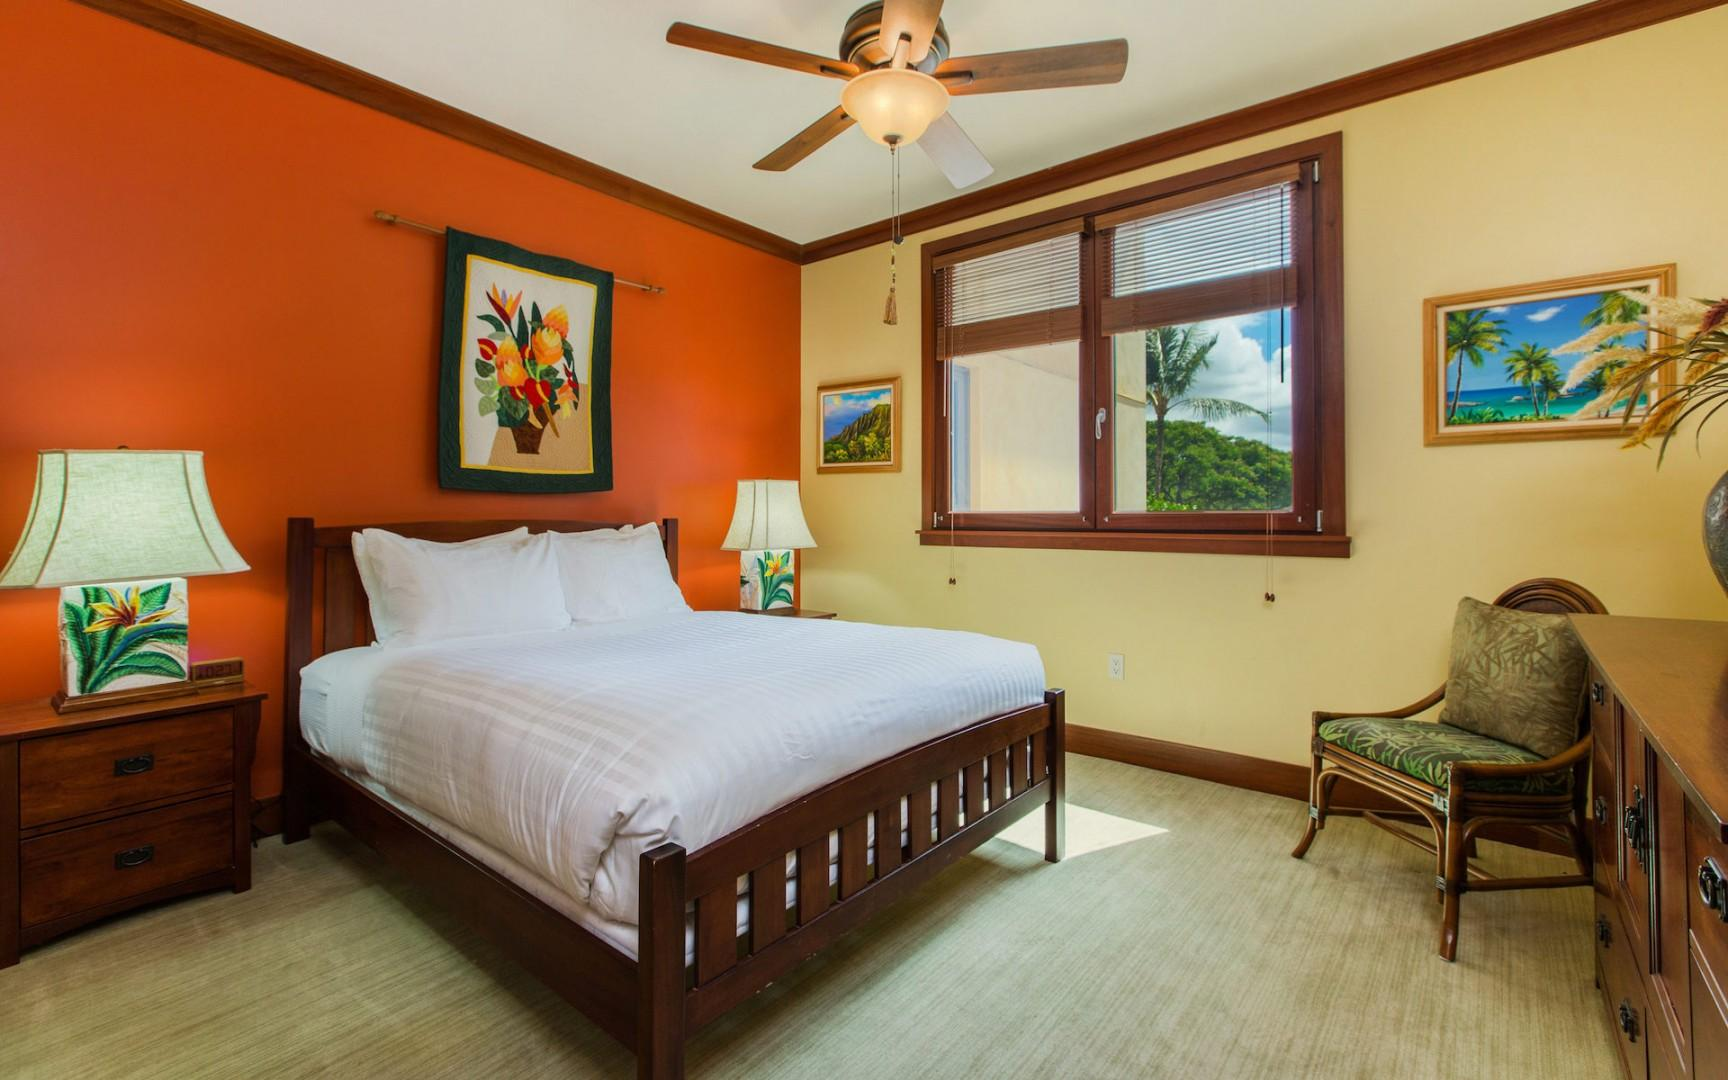 The 2nd (guest) bedroom features a Queen bed, dresser, and ceiling fan